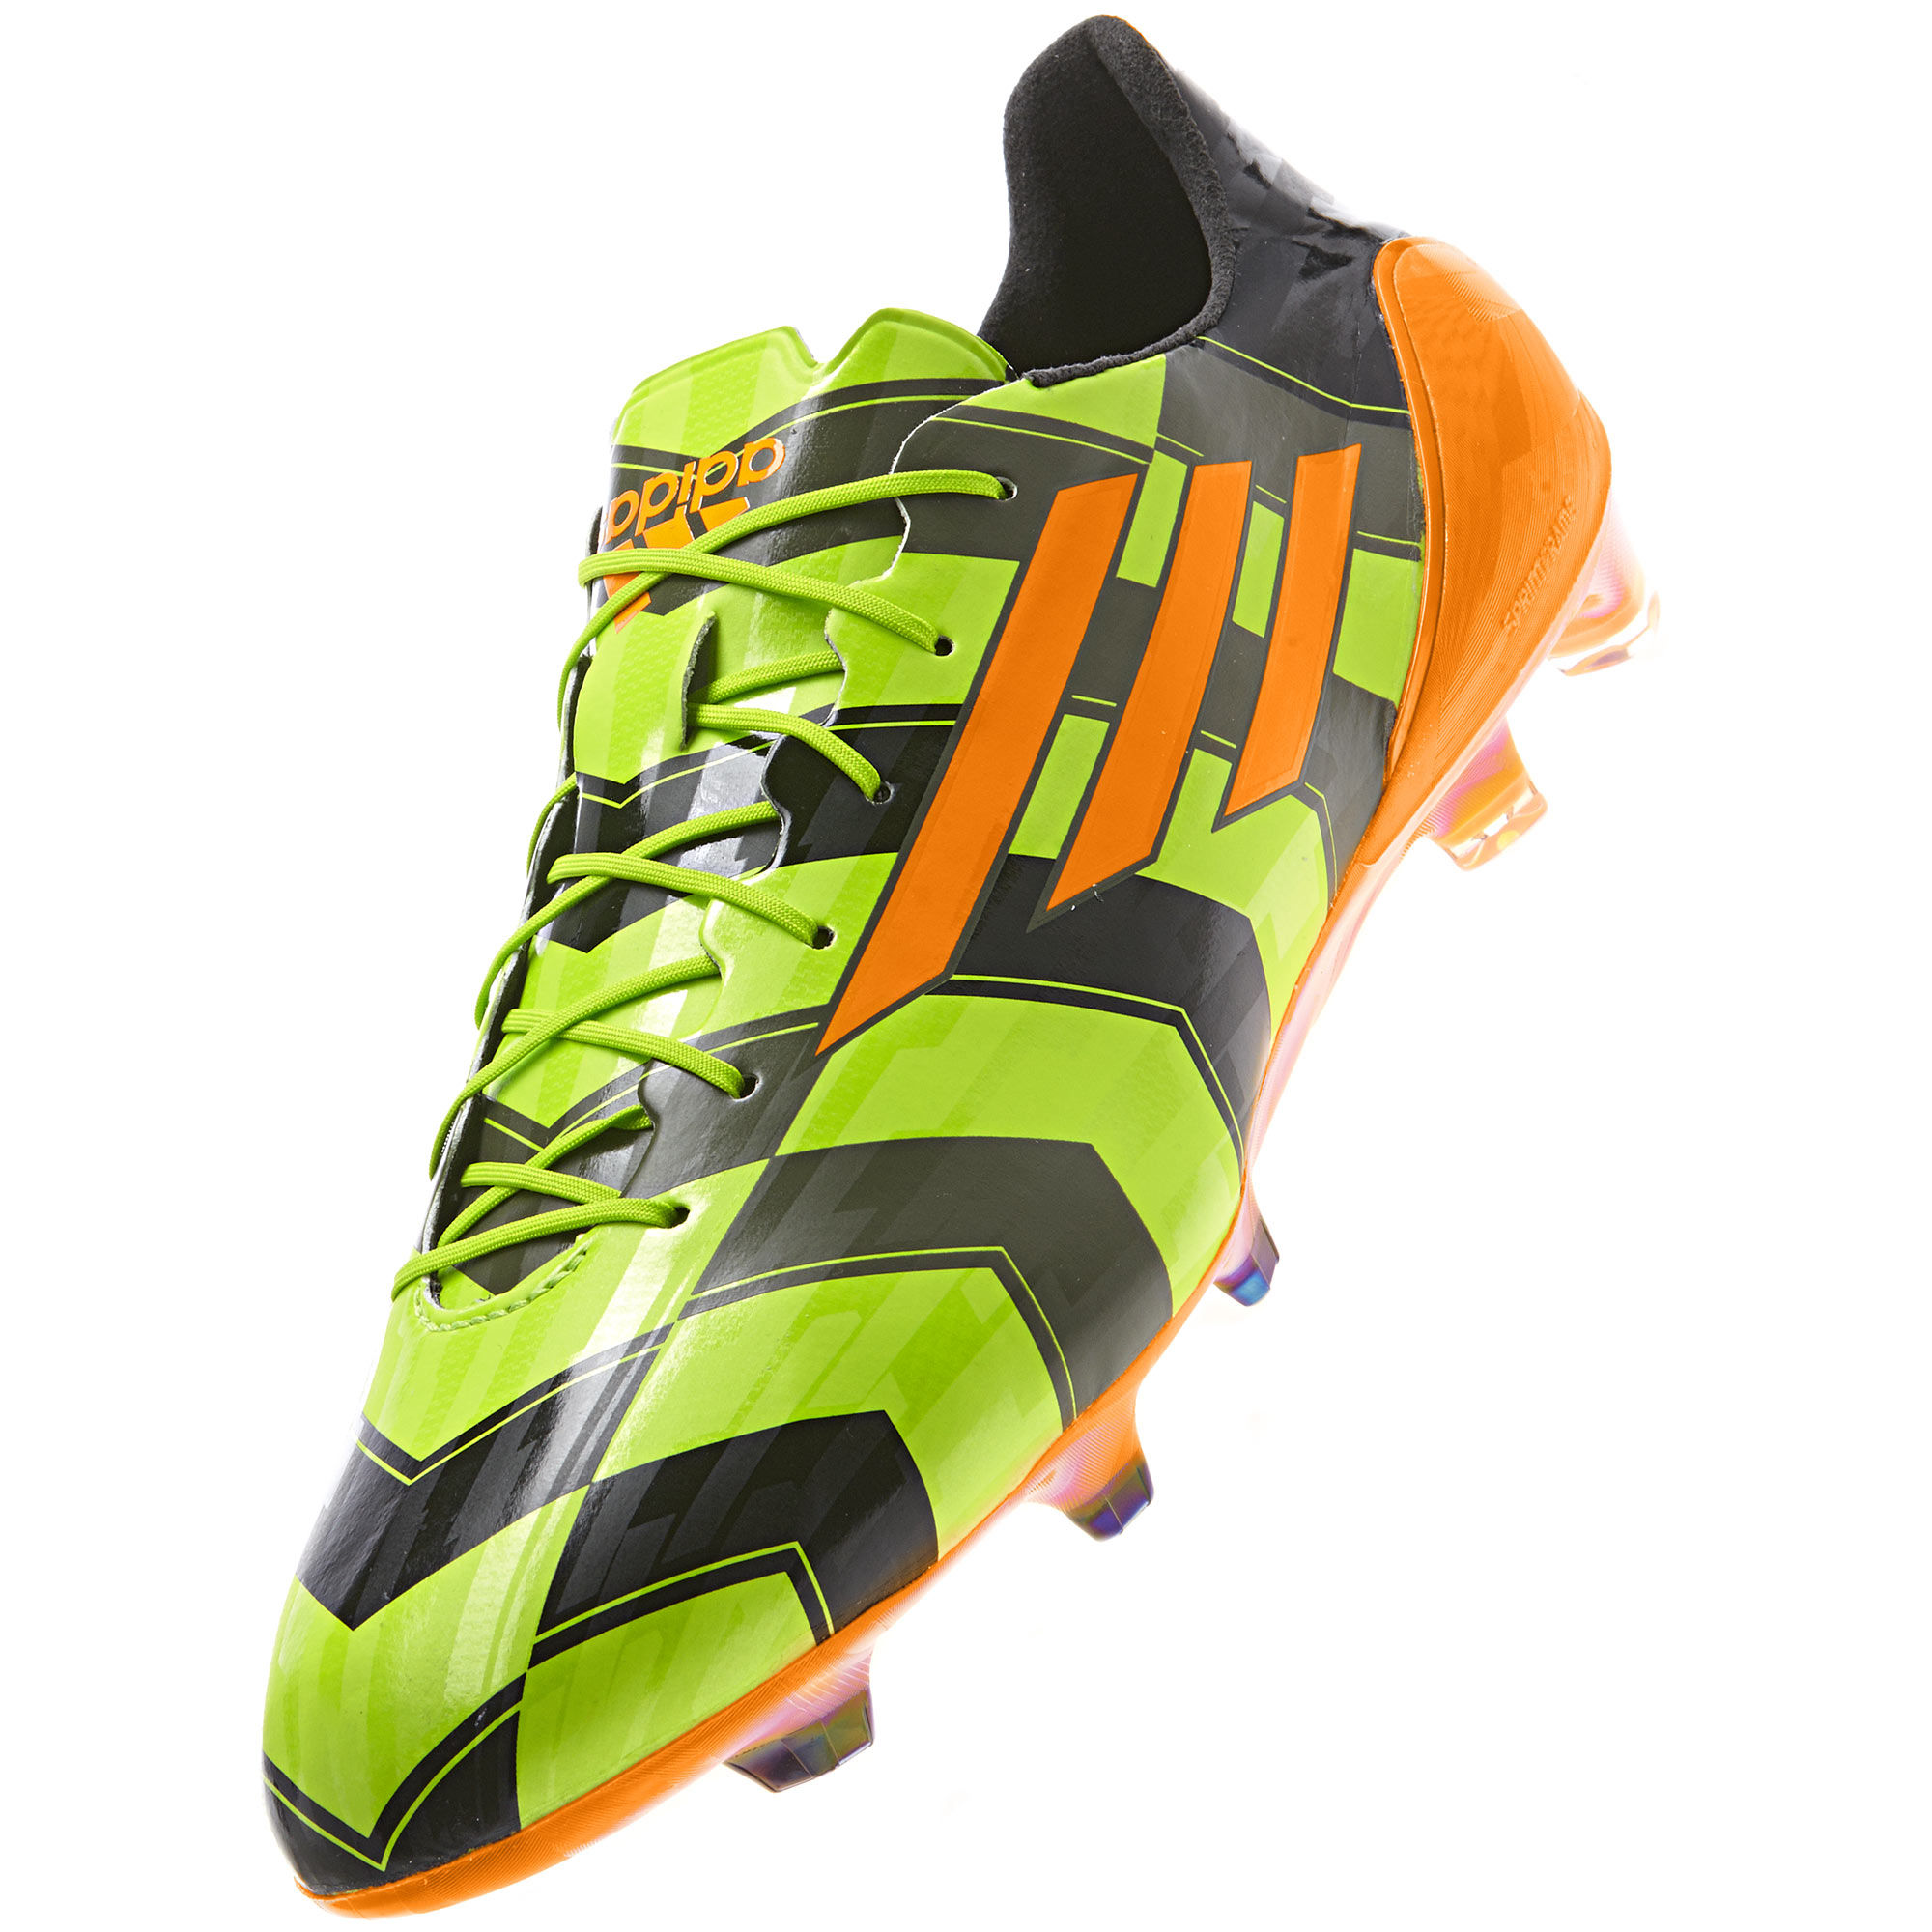 Adidas soccer cleats f50 2014